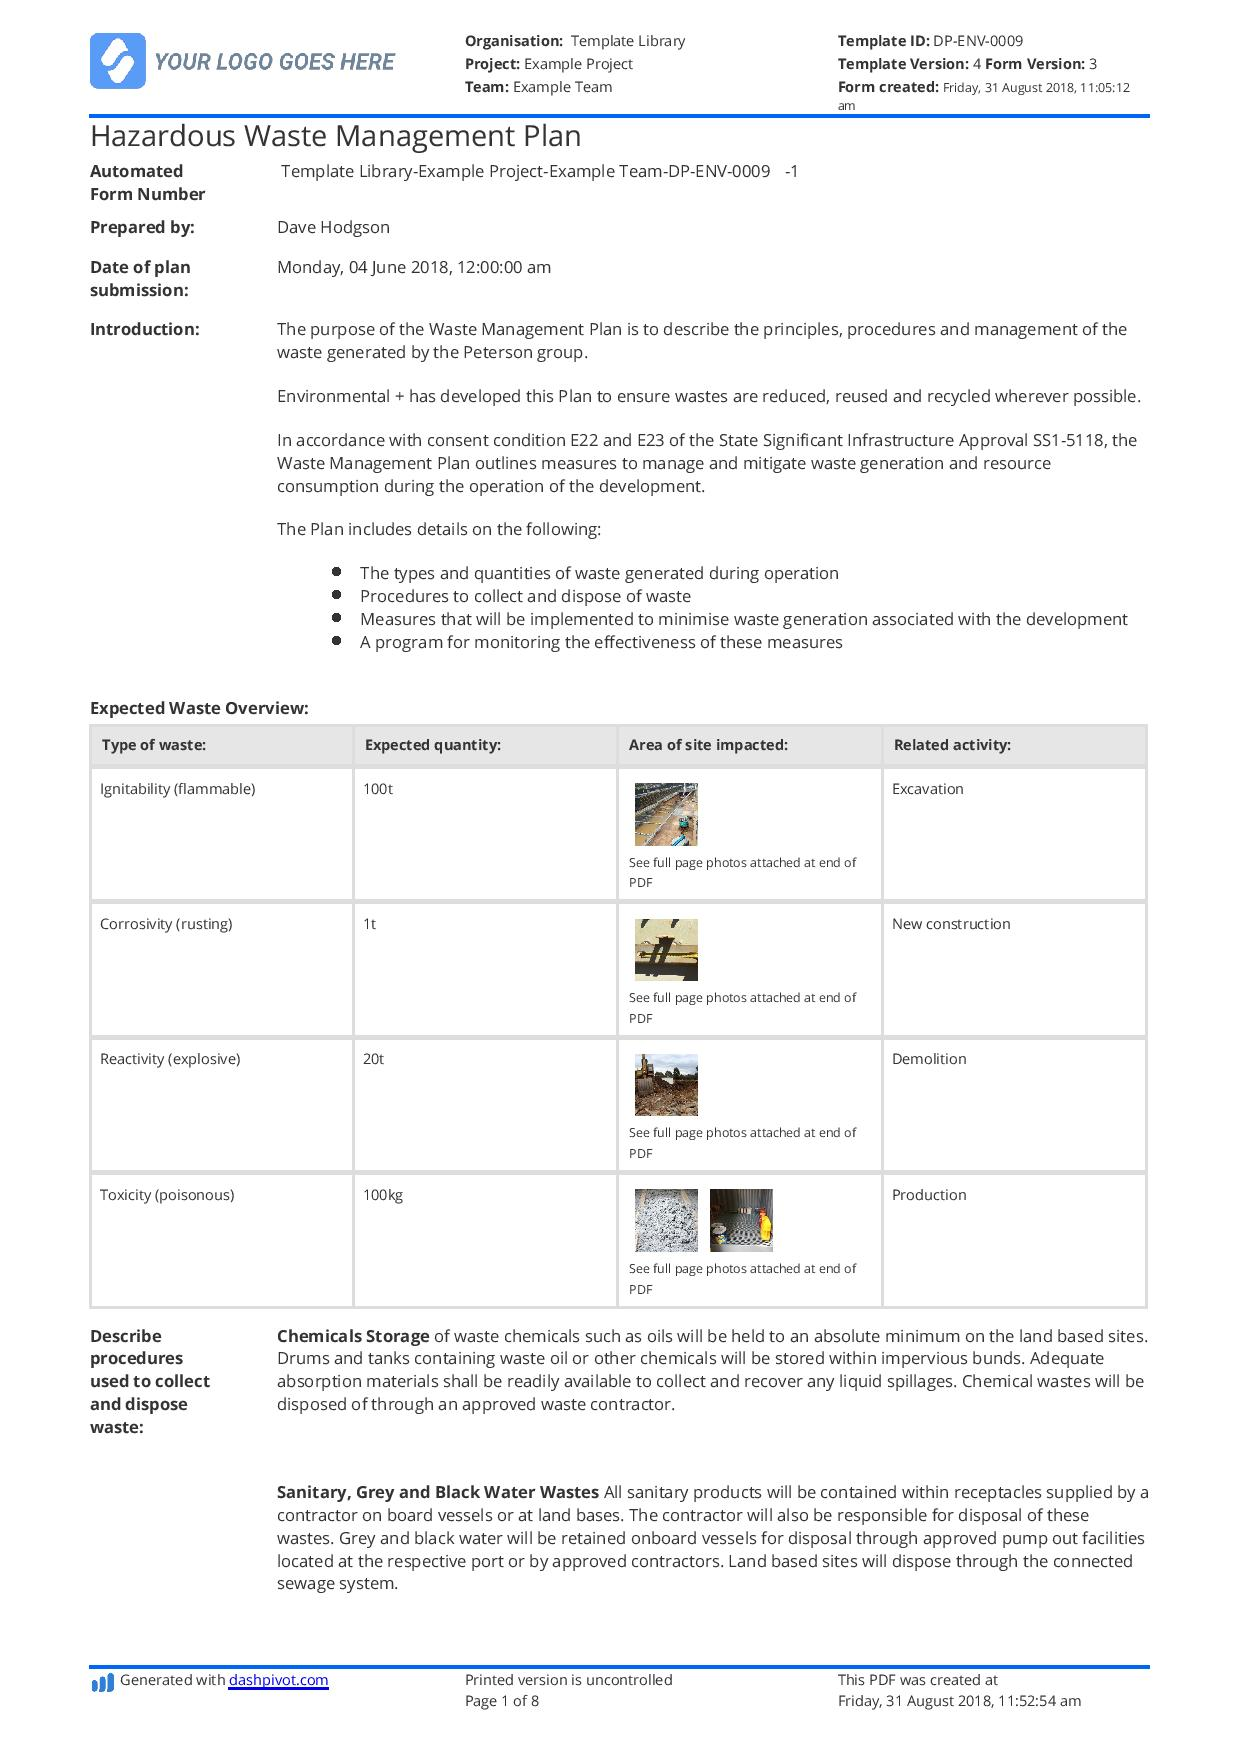 Hazardous Waste Management Plan Template Free And Editable